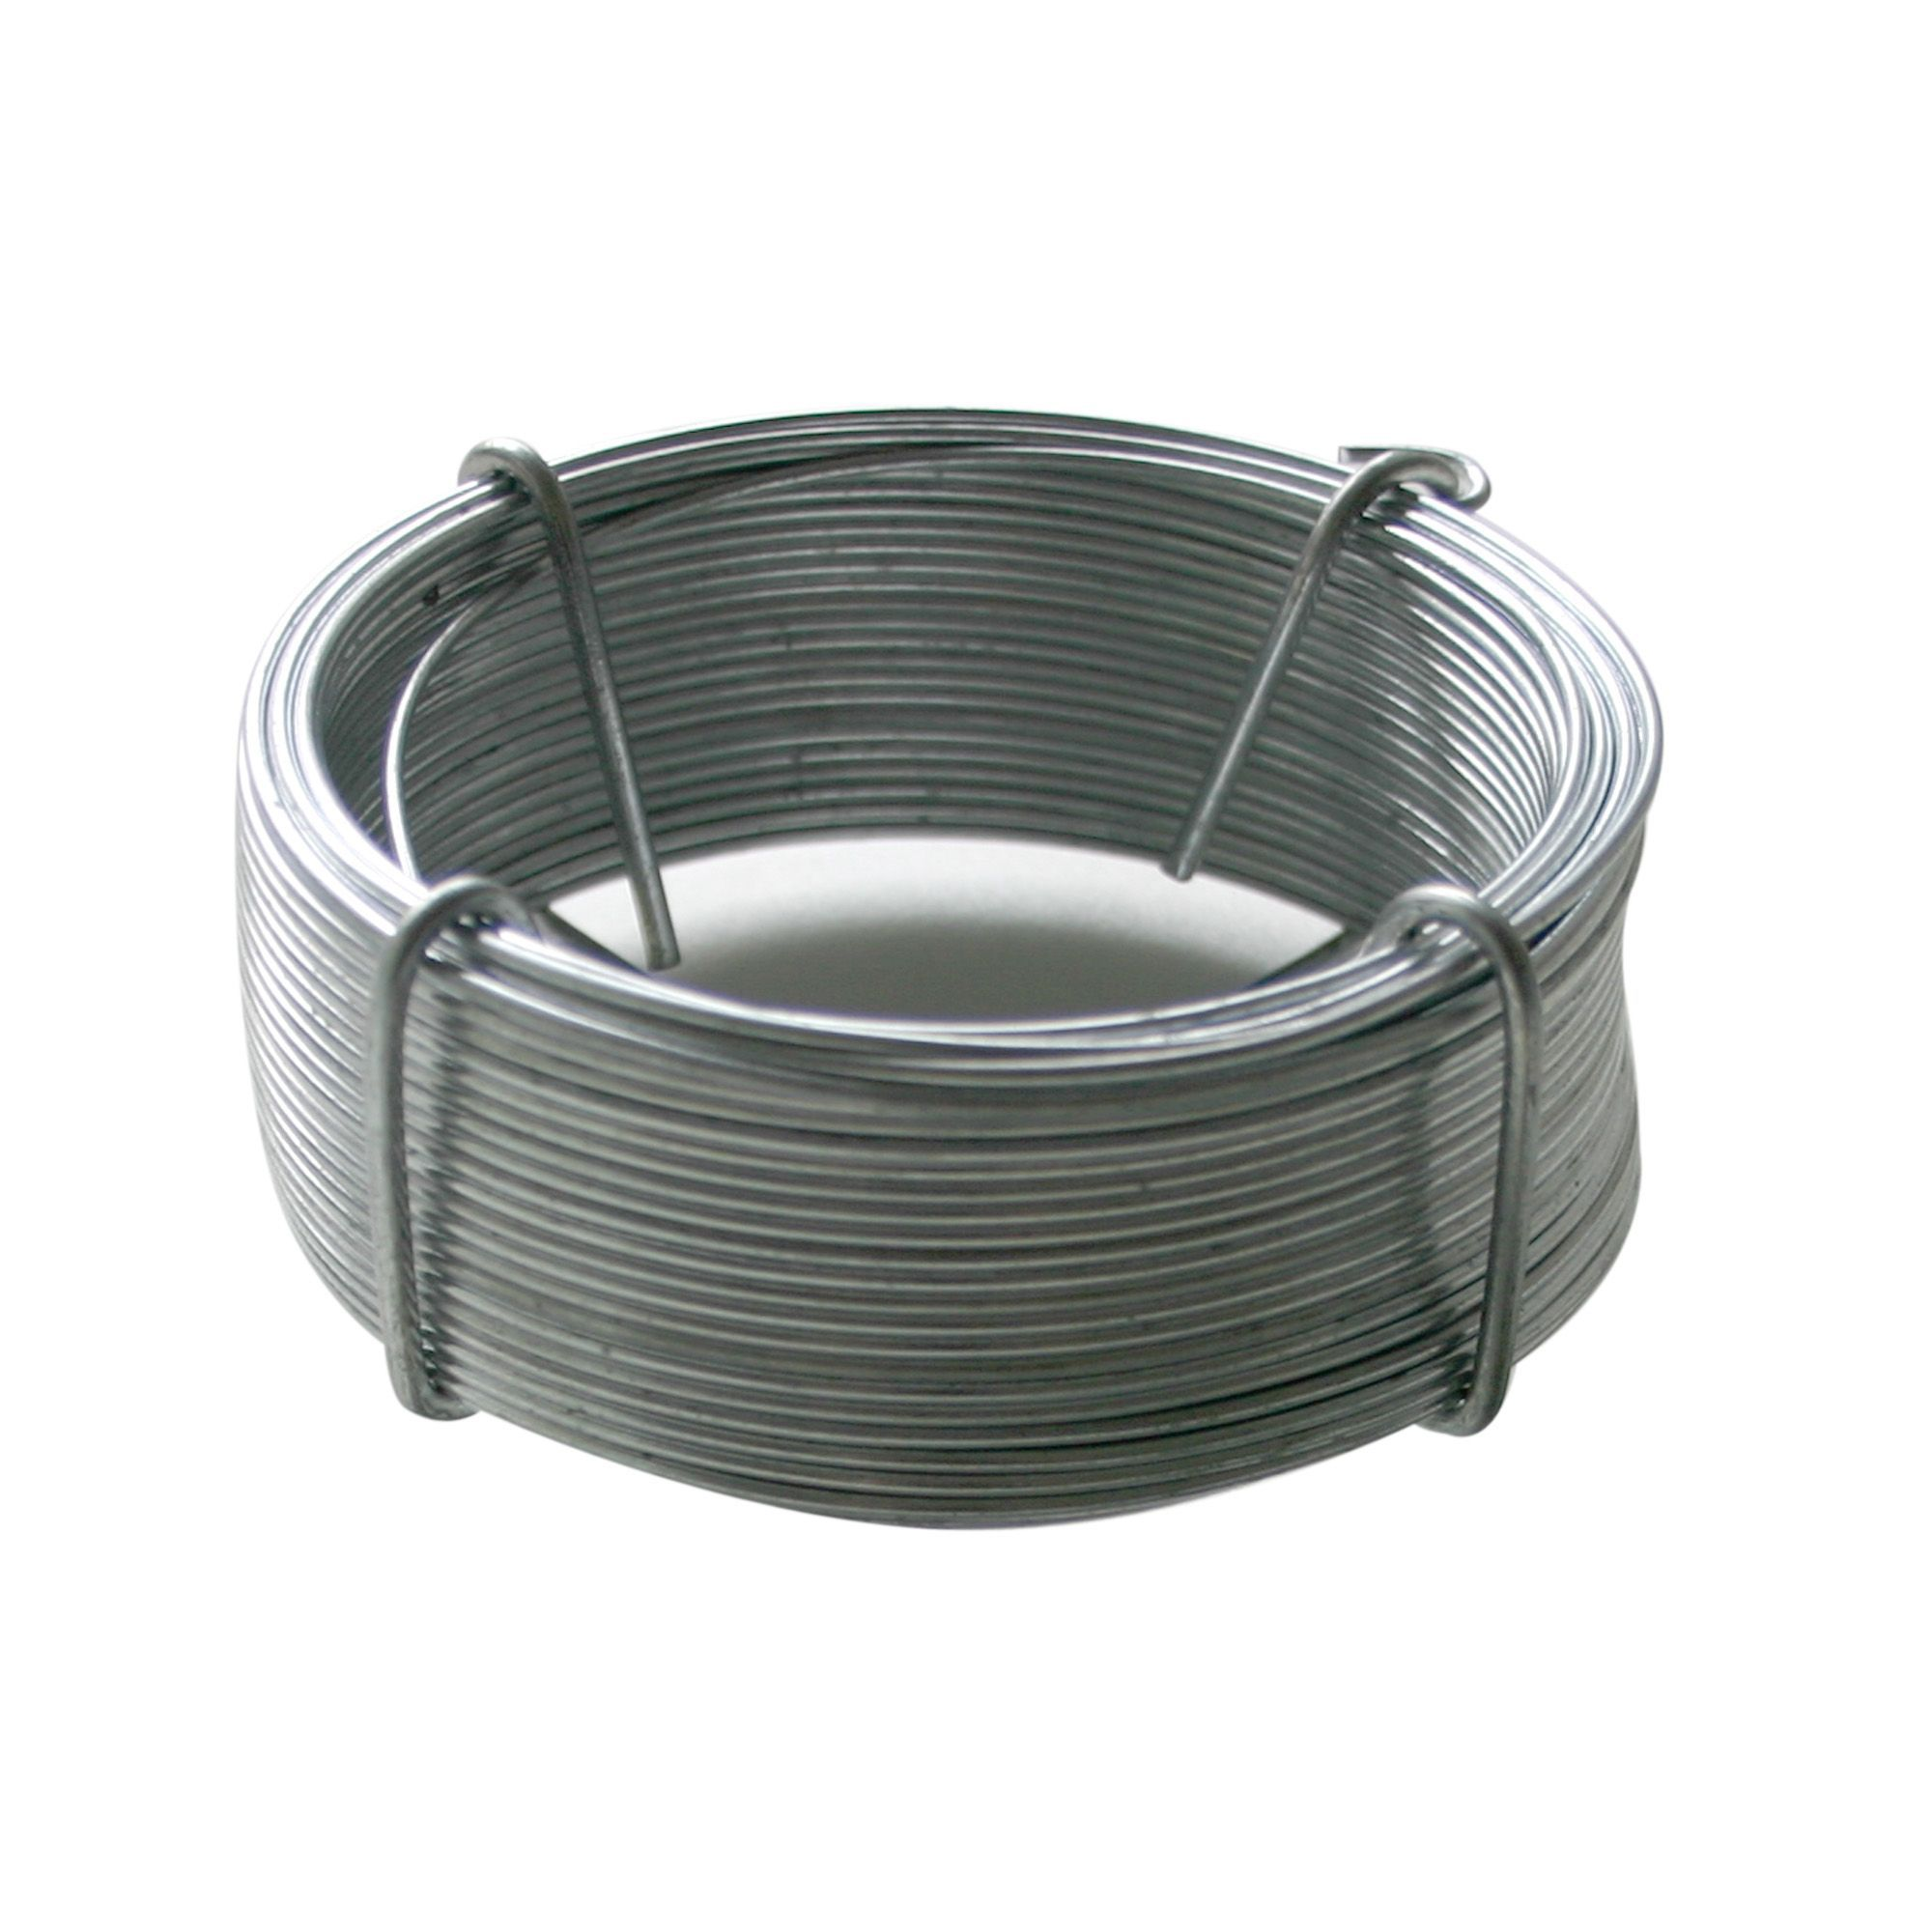 Gardman Galvanised Steel Garden wire (L)50m | Departments | DIY at B&Q